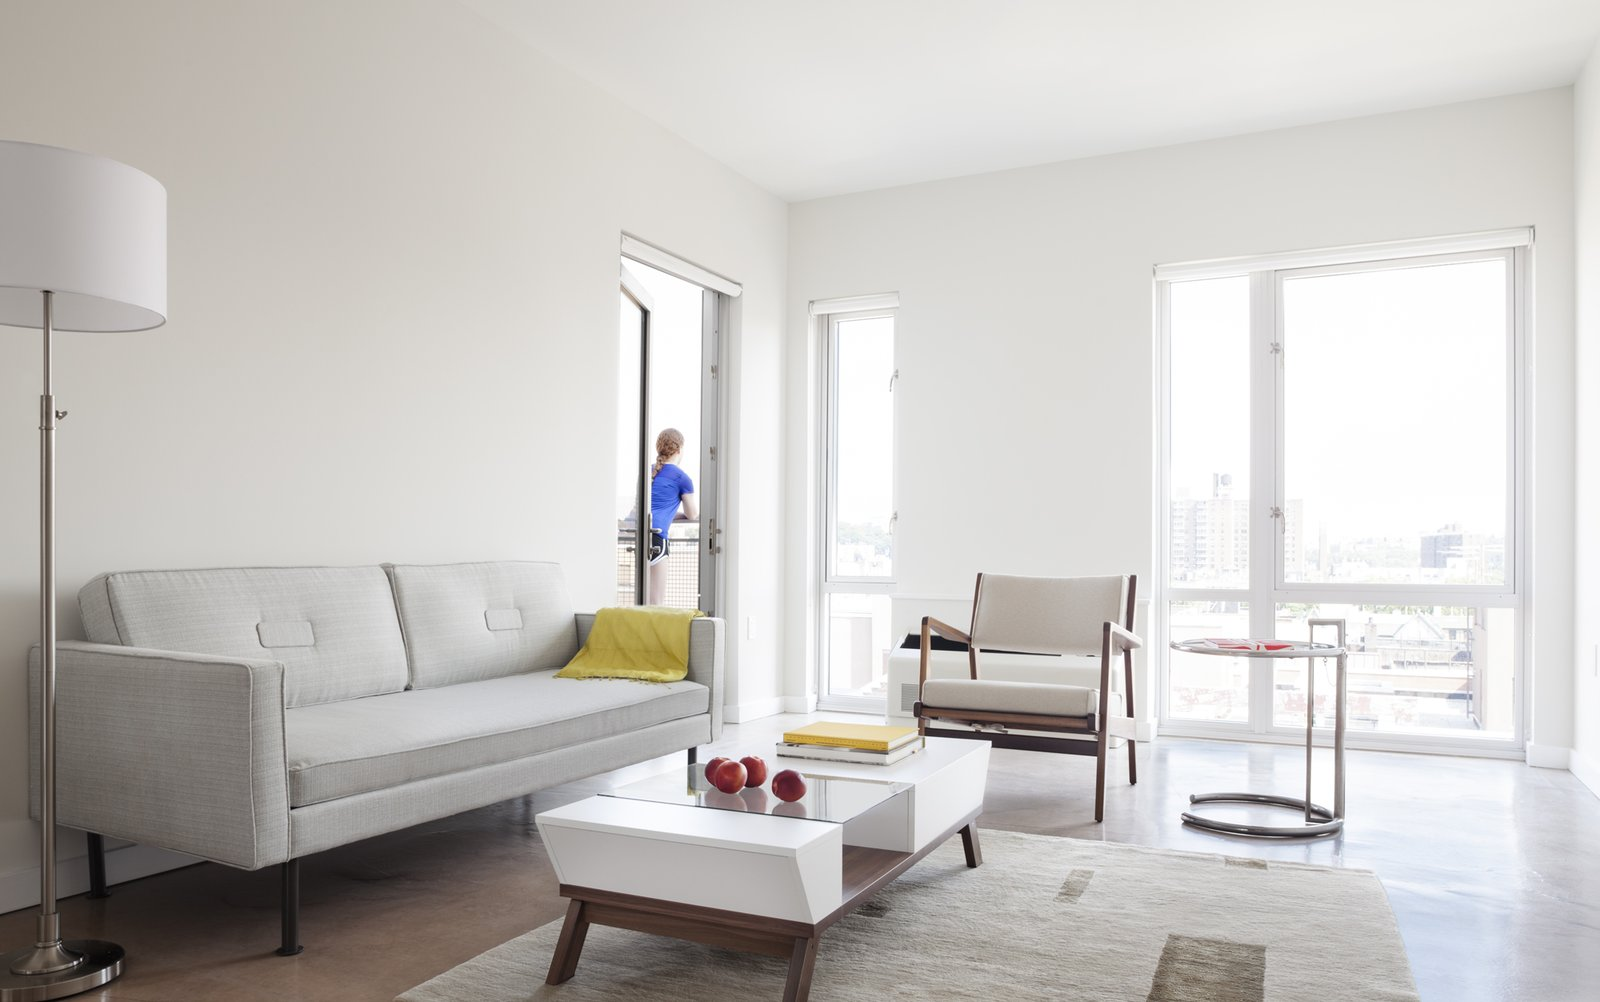 """Inside, one-, two-, and three-bedroom apartments are available, as well as studios. The majority of the fixtures were fabricated off-site.  Search """"madrid couple remake apartment one their childhood buildings"""" from It Took Less Than a Month to Assemble this Entirely Modular Apartment Building in NYC"""